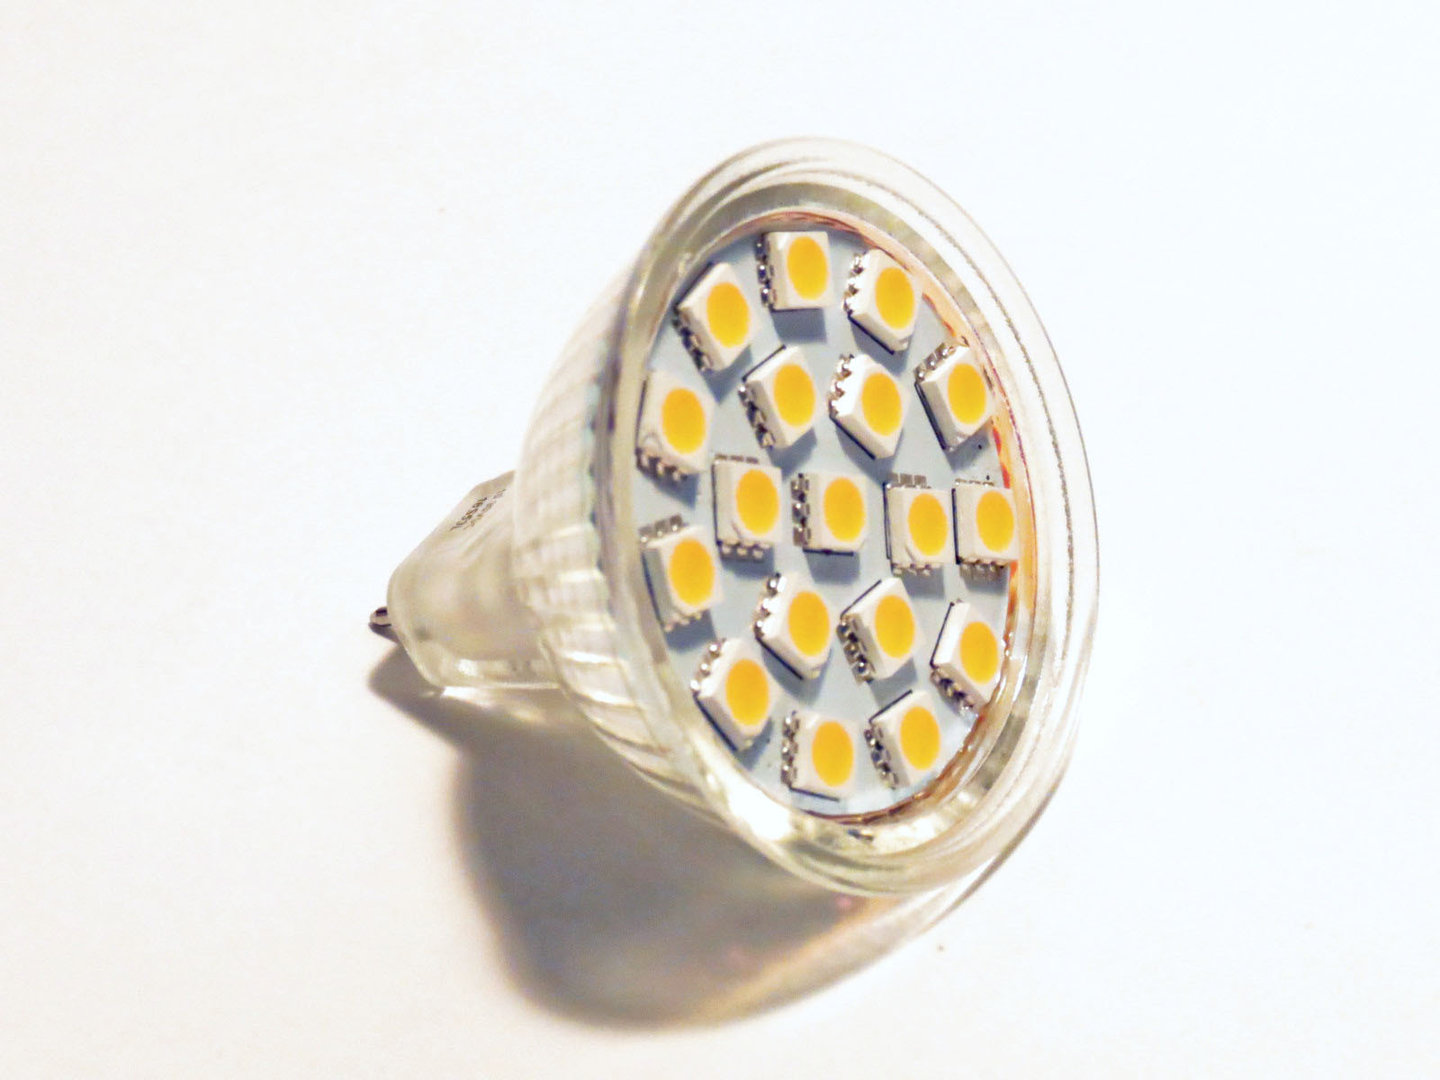 MR16 GU5.3 18 LED SMD 10-30V 125° warmweiß